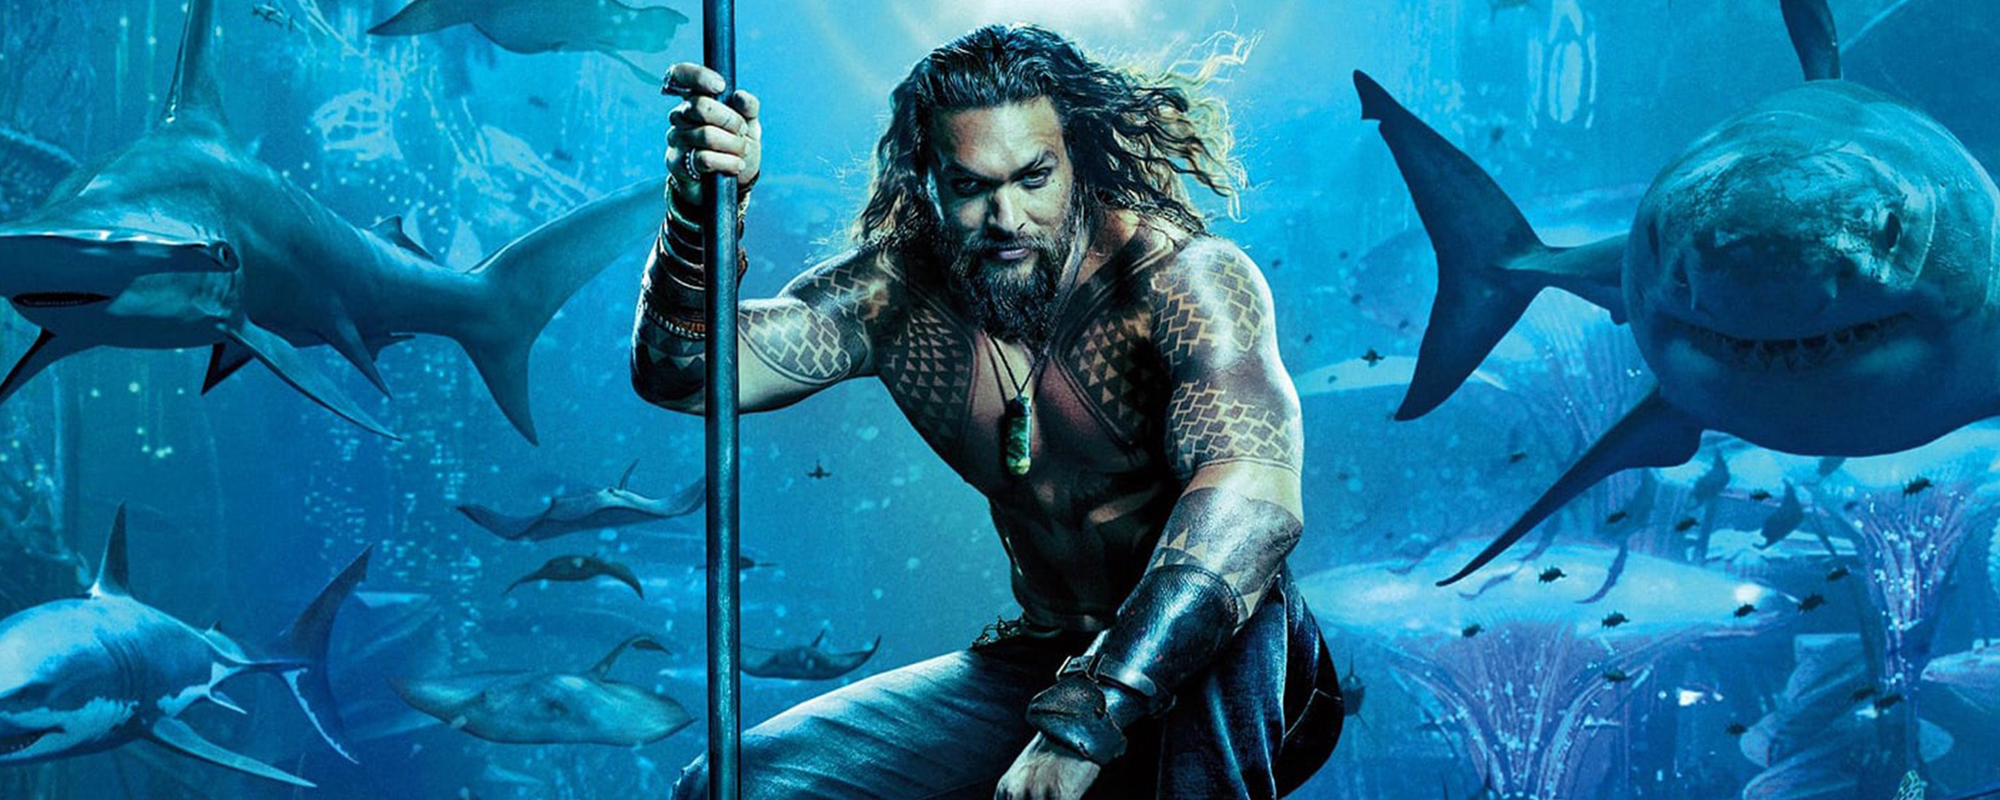 Aquaman Now Available On Demand